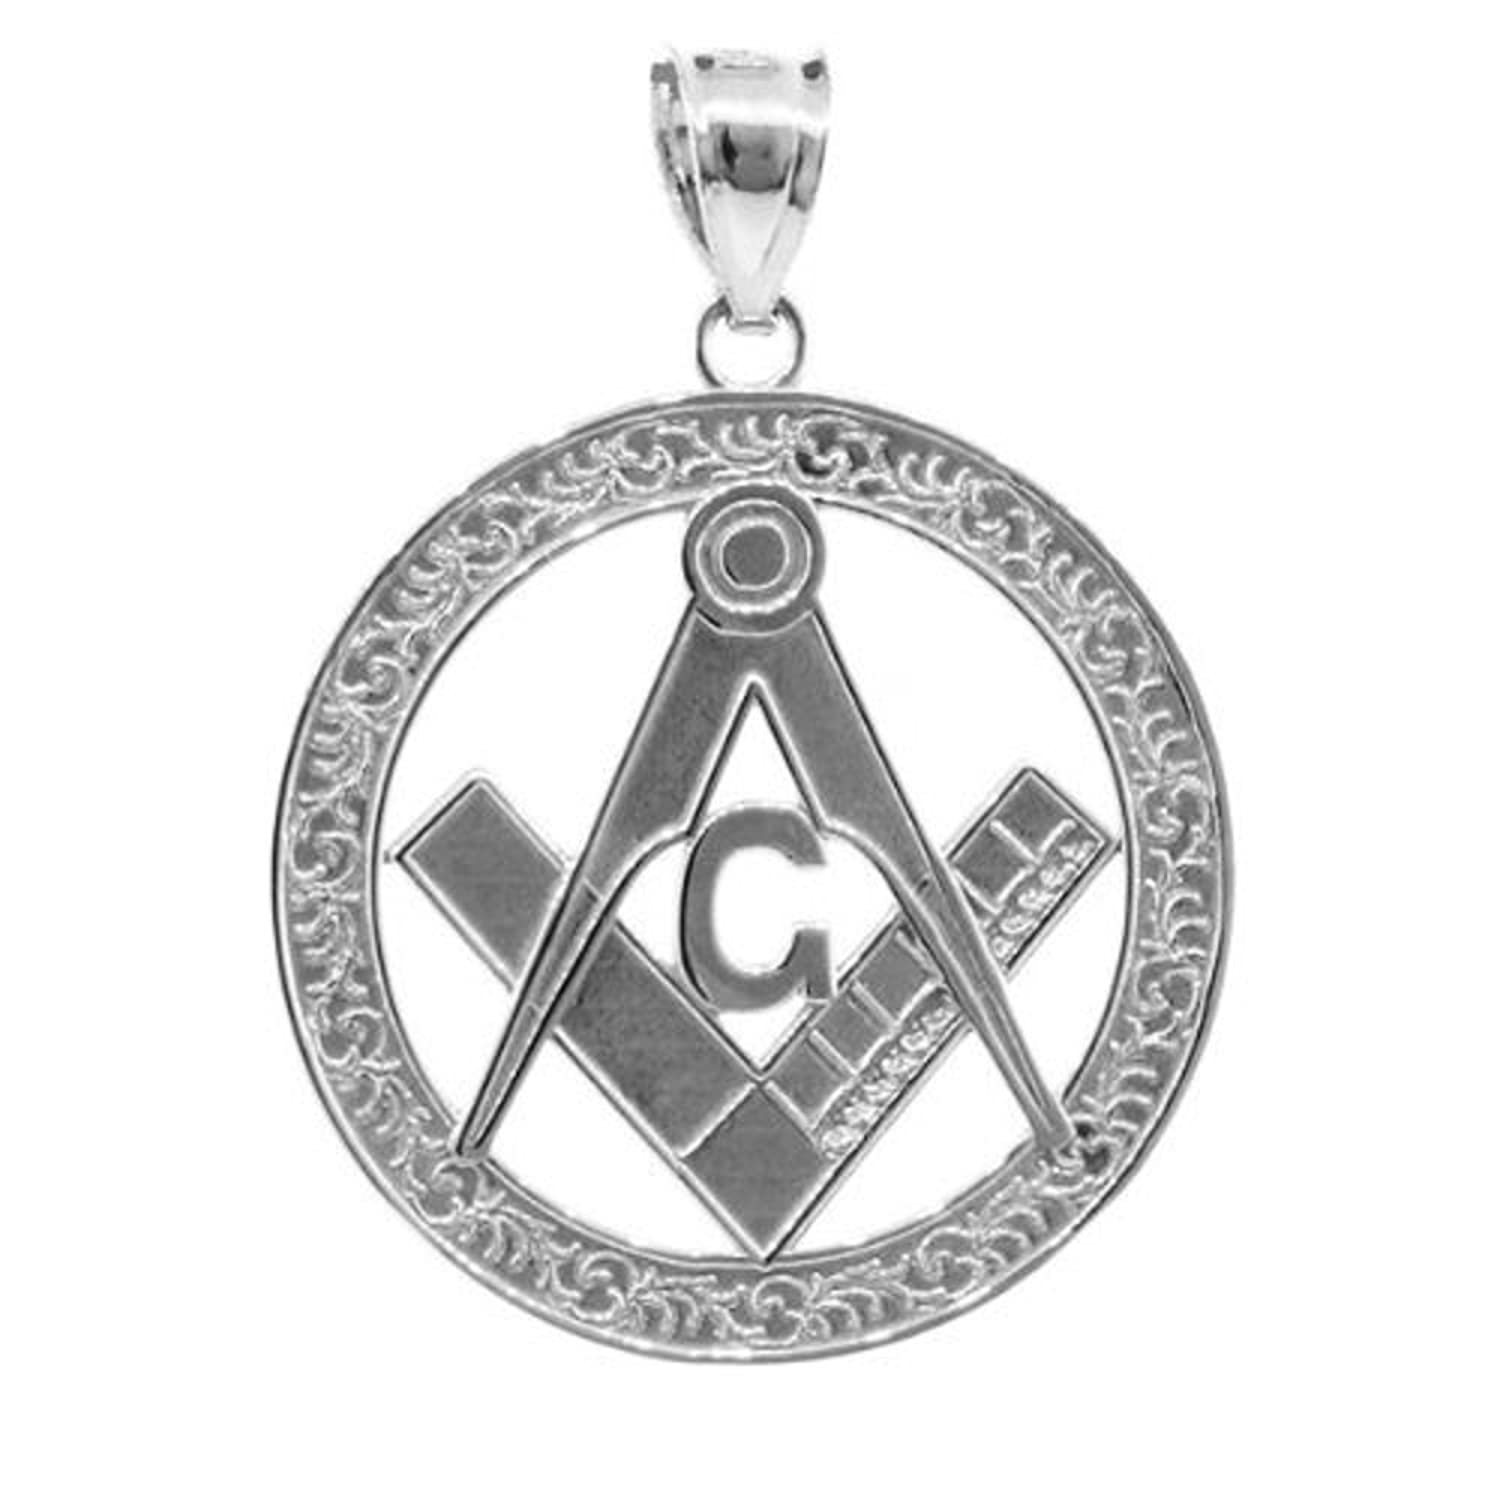 925 sterling silver freemason compass and square masonic pendant 925 sterling silver freemason compass and square masonic pendant amazon aloadofball Gallery